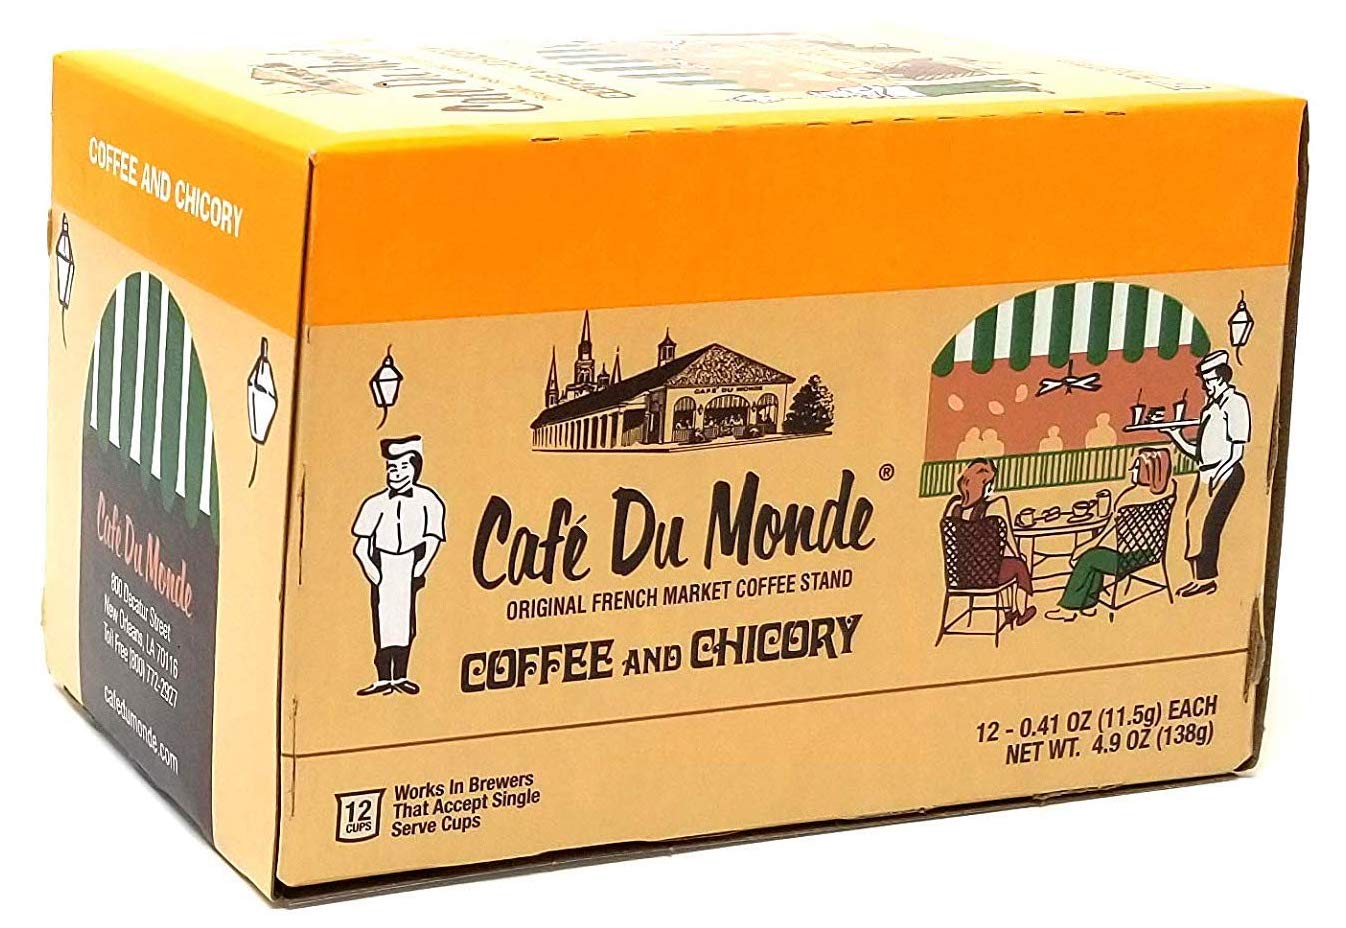 Cafe Du Monde Coffee and Chicory Single-Serve Cup Pods